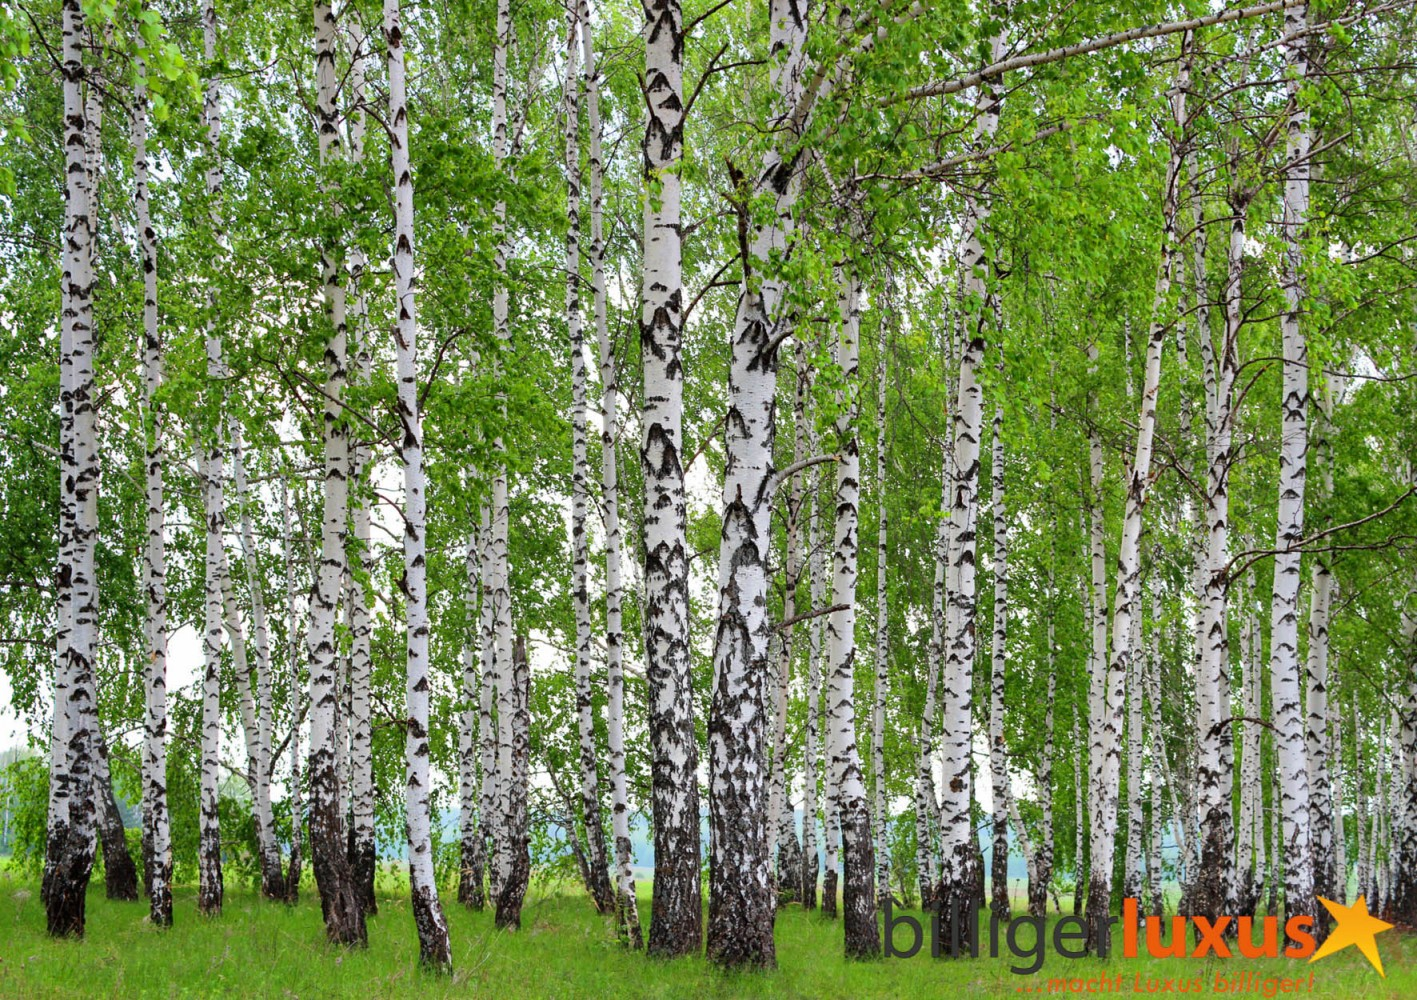 Wall mural wallpaper forest trees birch photo 360 cm x 254 for Birch tree forest wall mural